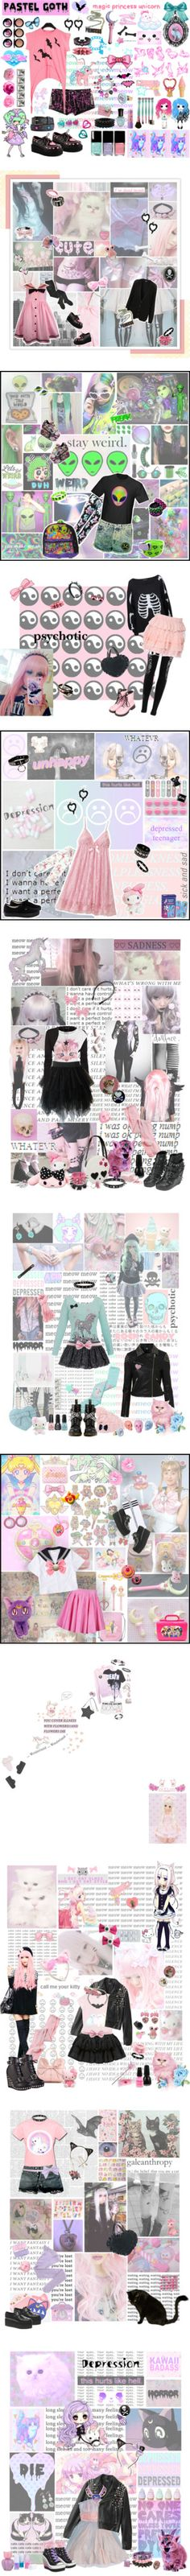 """""""Pastel Goth outfits - by me"""" by kawaii-neko-chan ❤ liked on Polyvore"""